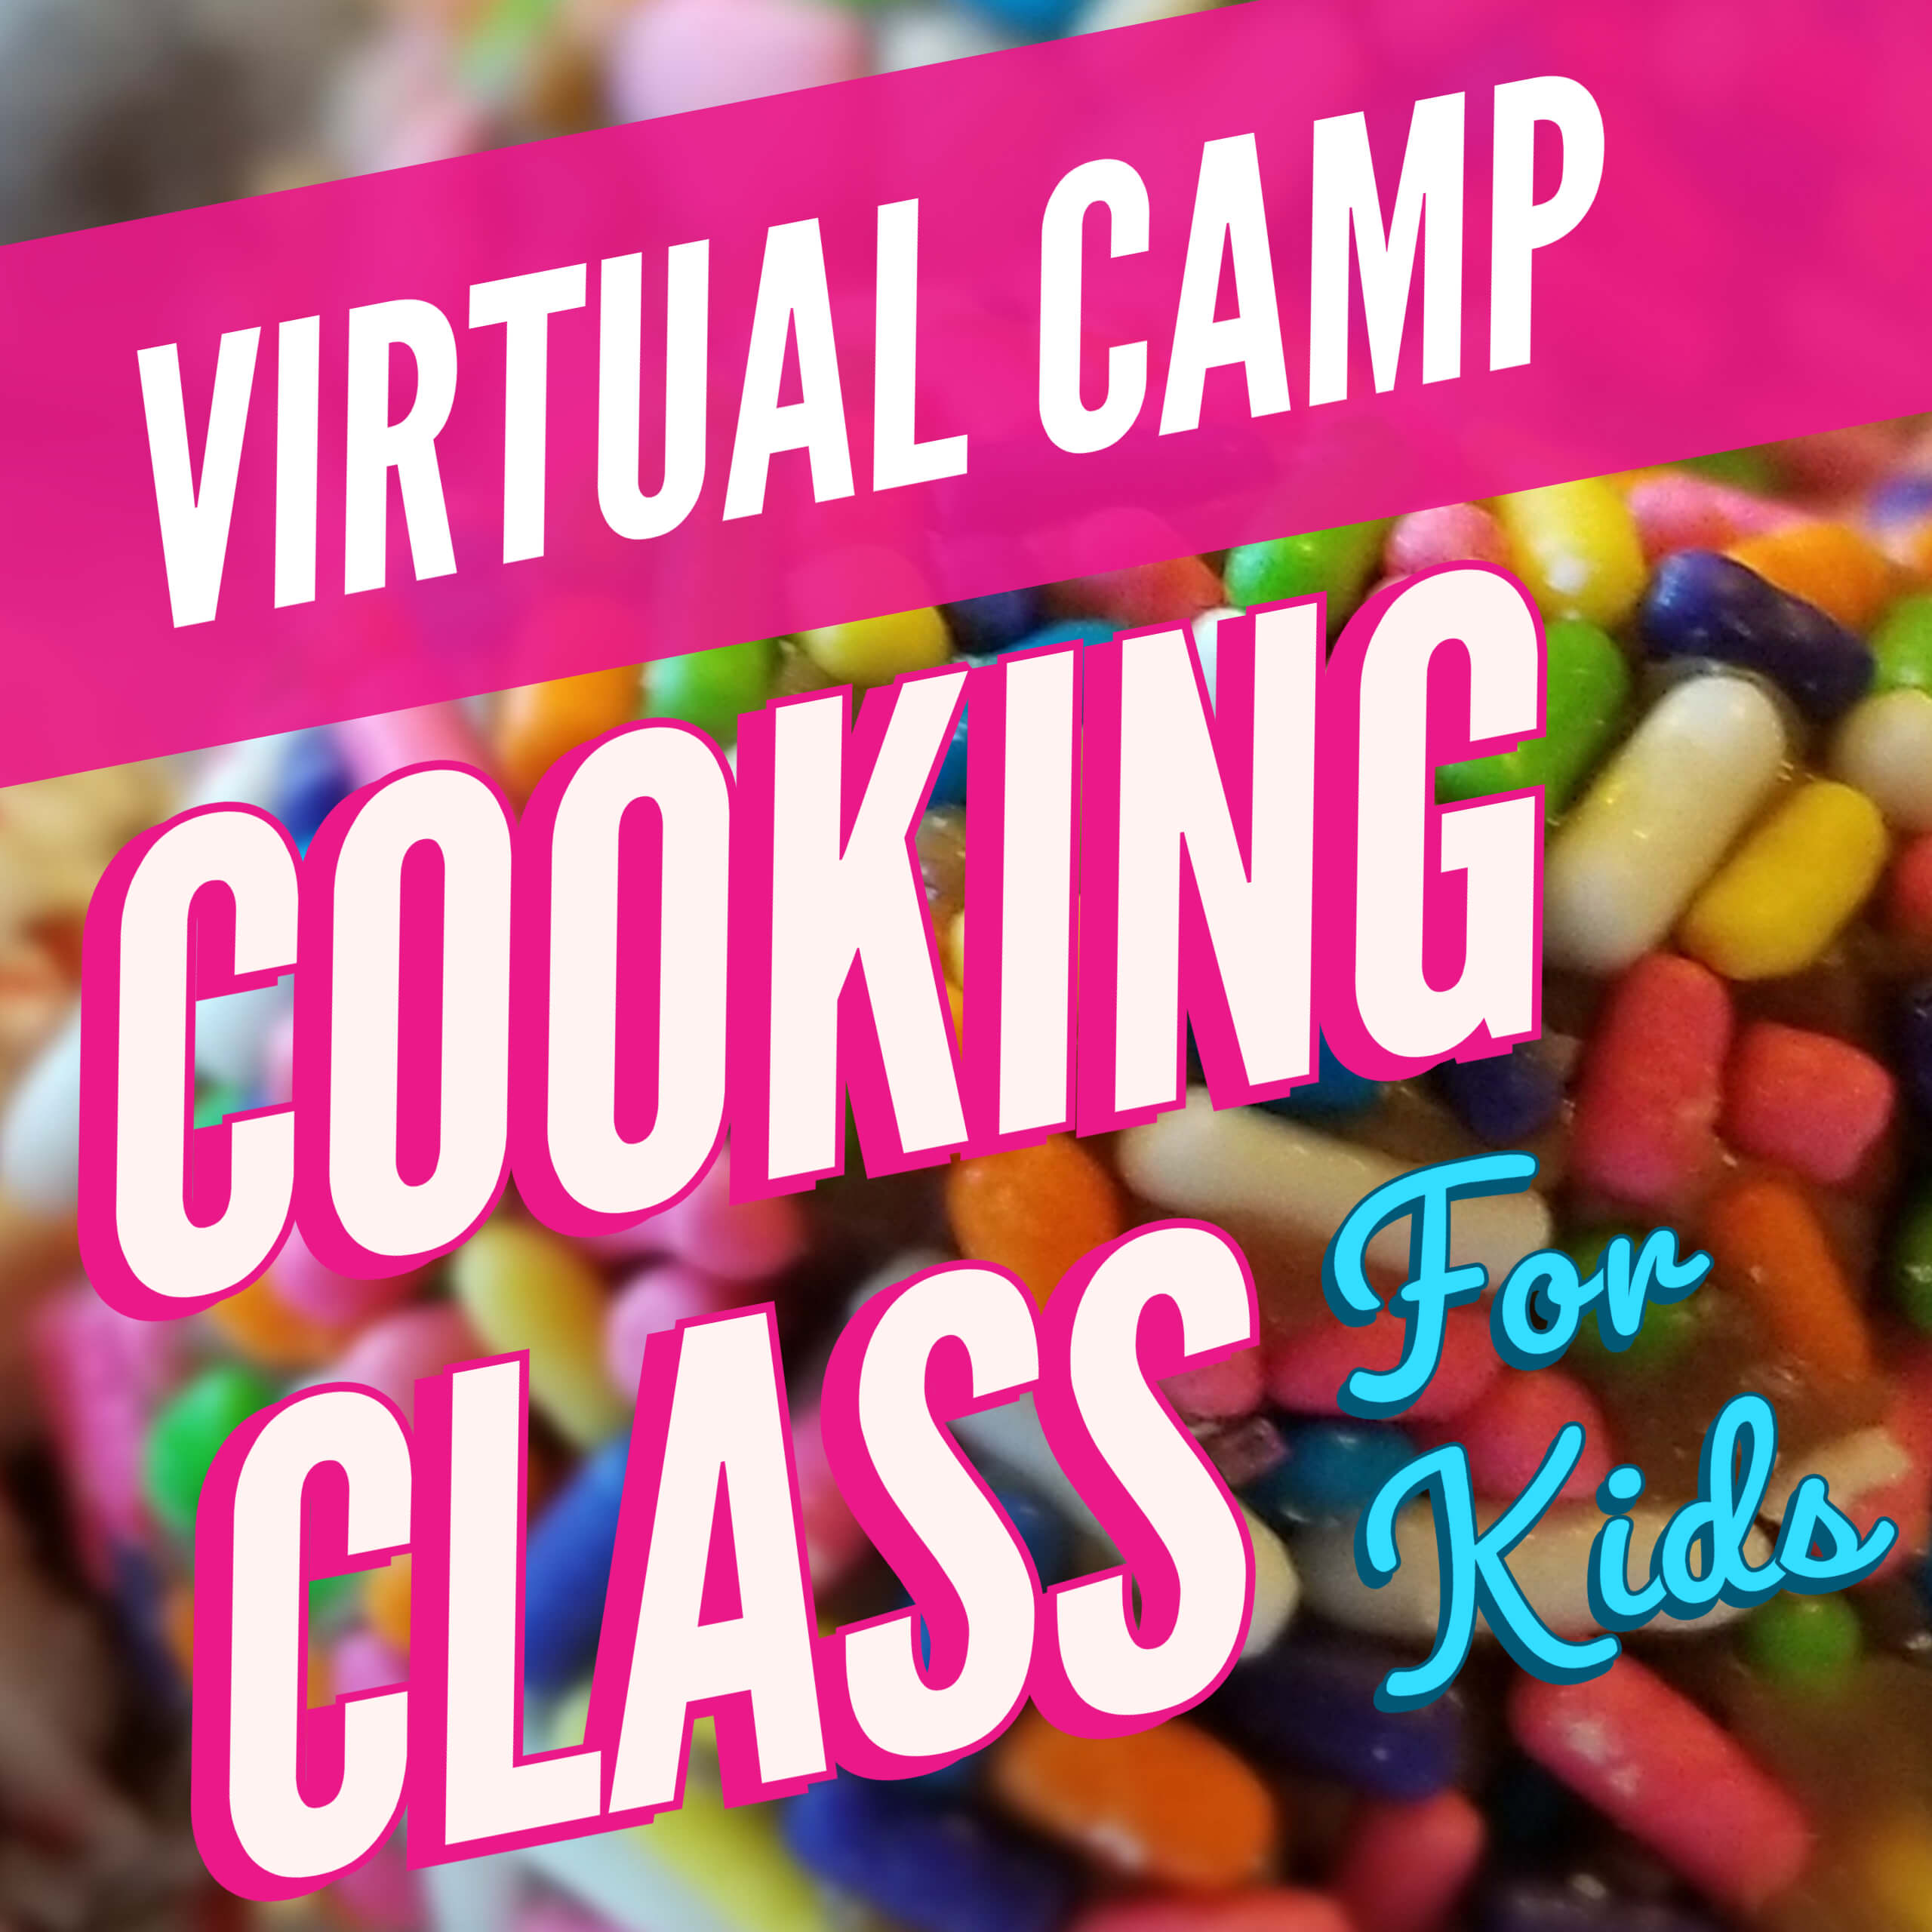 Cooking classes for kids schedule, along with all of the ingredients needed for the week long, virtual cooking class for kids!